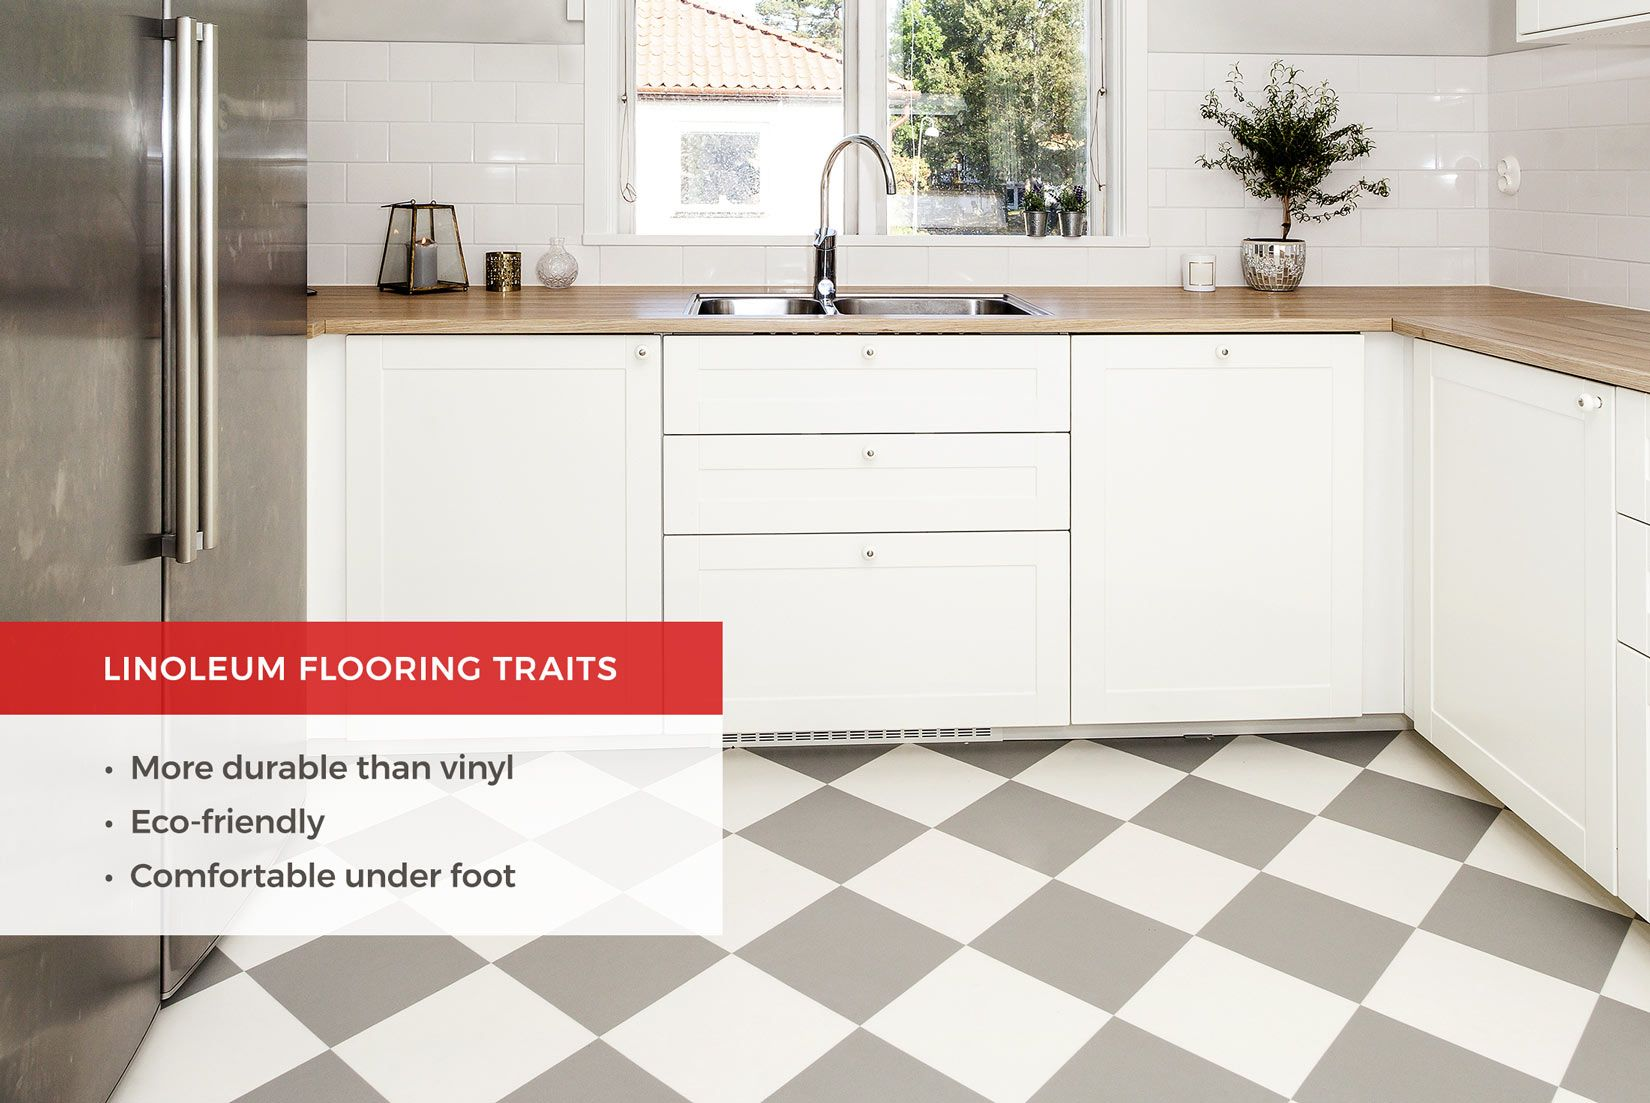 Linoleum Kitchen Flooring Is Water Resistant And Eco Friendly Read On To Learn More About Types Of Ki With Images Kitchen Flooring Best Flooring For Kitchen Cool Kitchens